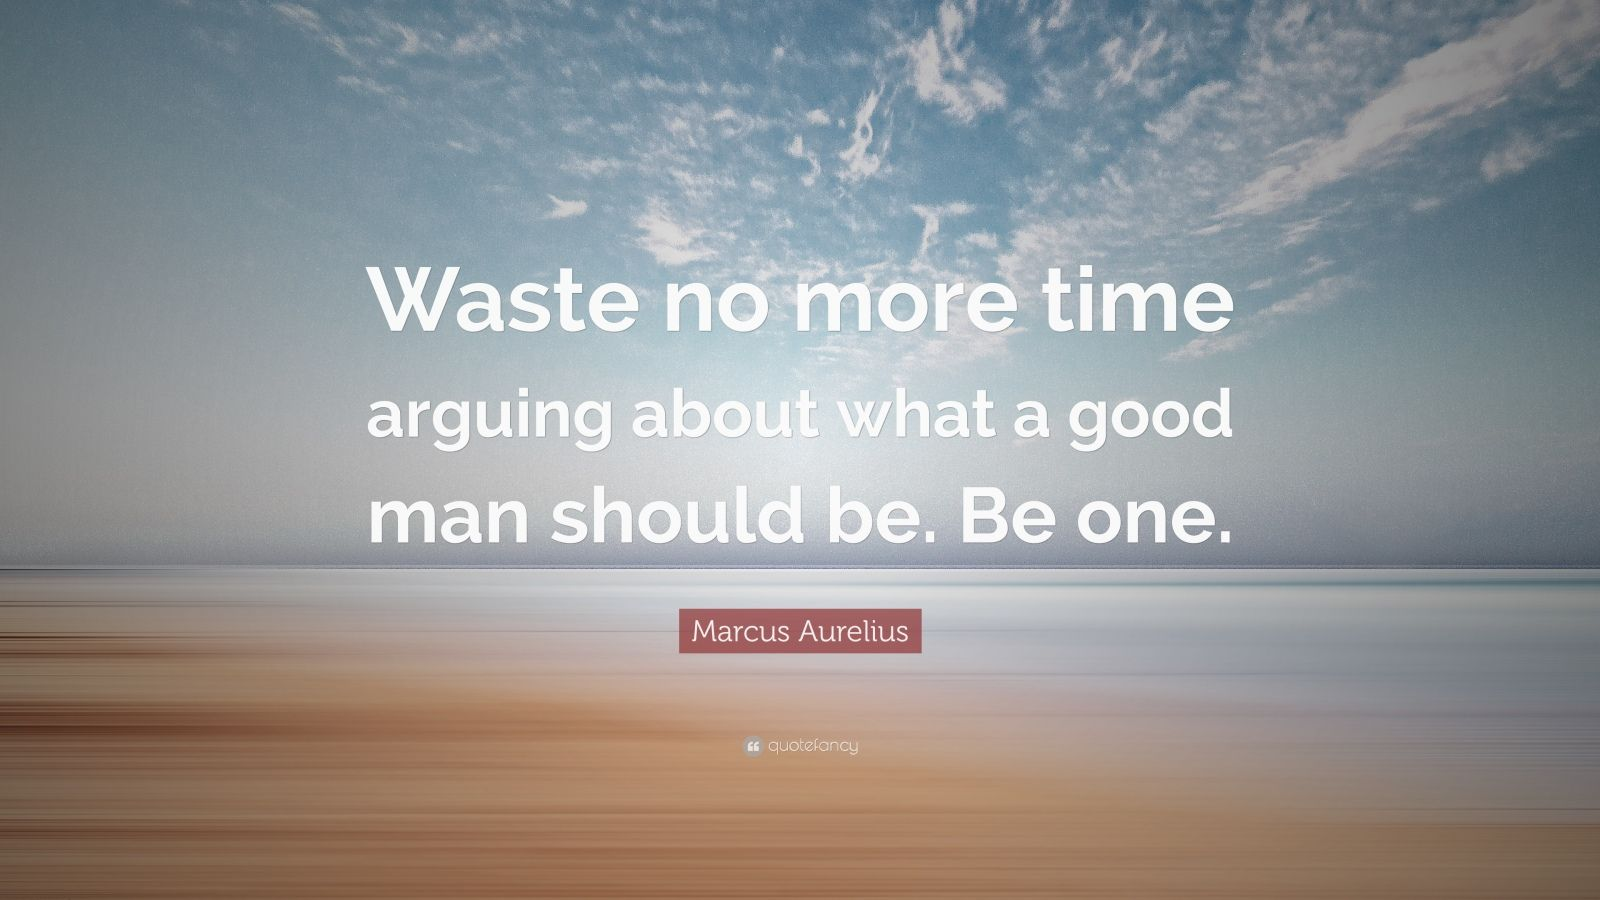 Good One More Time About What Arguing Man Should Be Be Aurelius Waste Marcus No